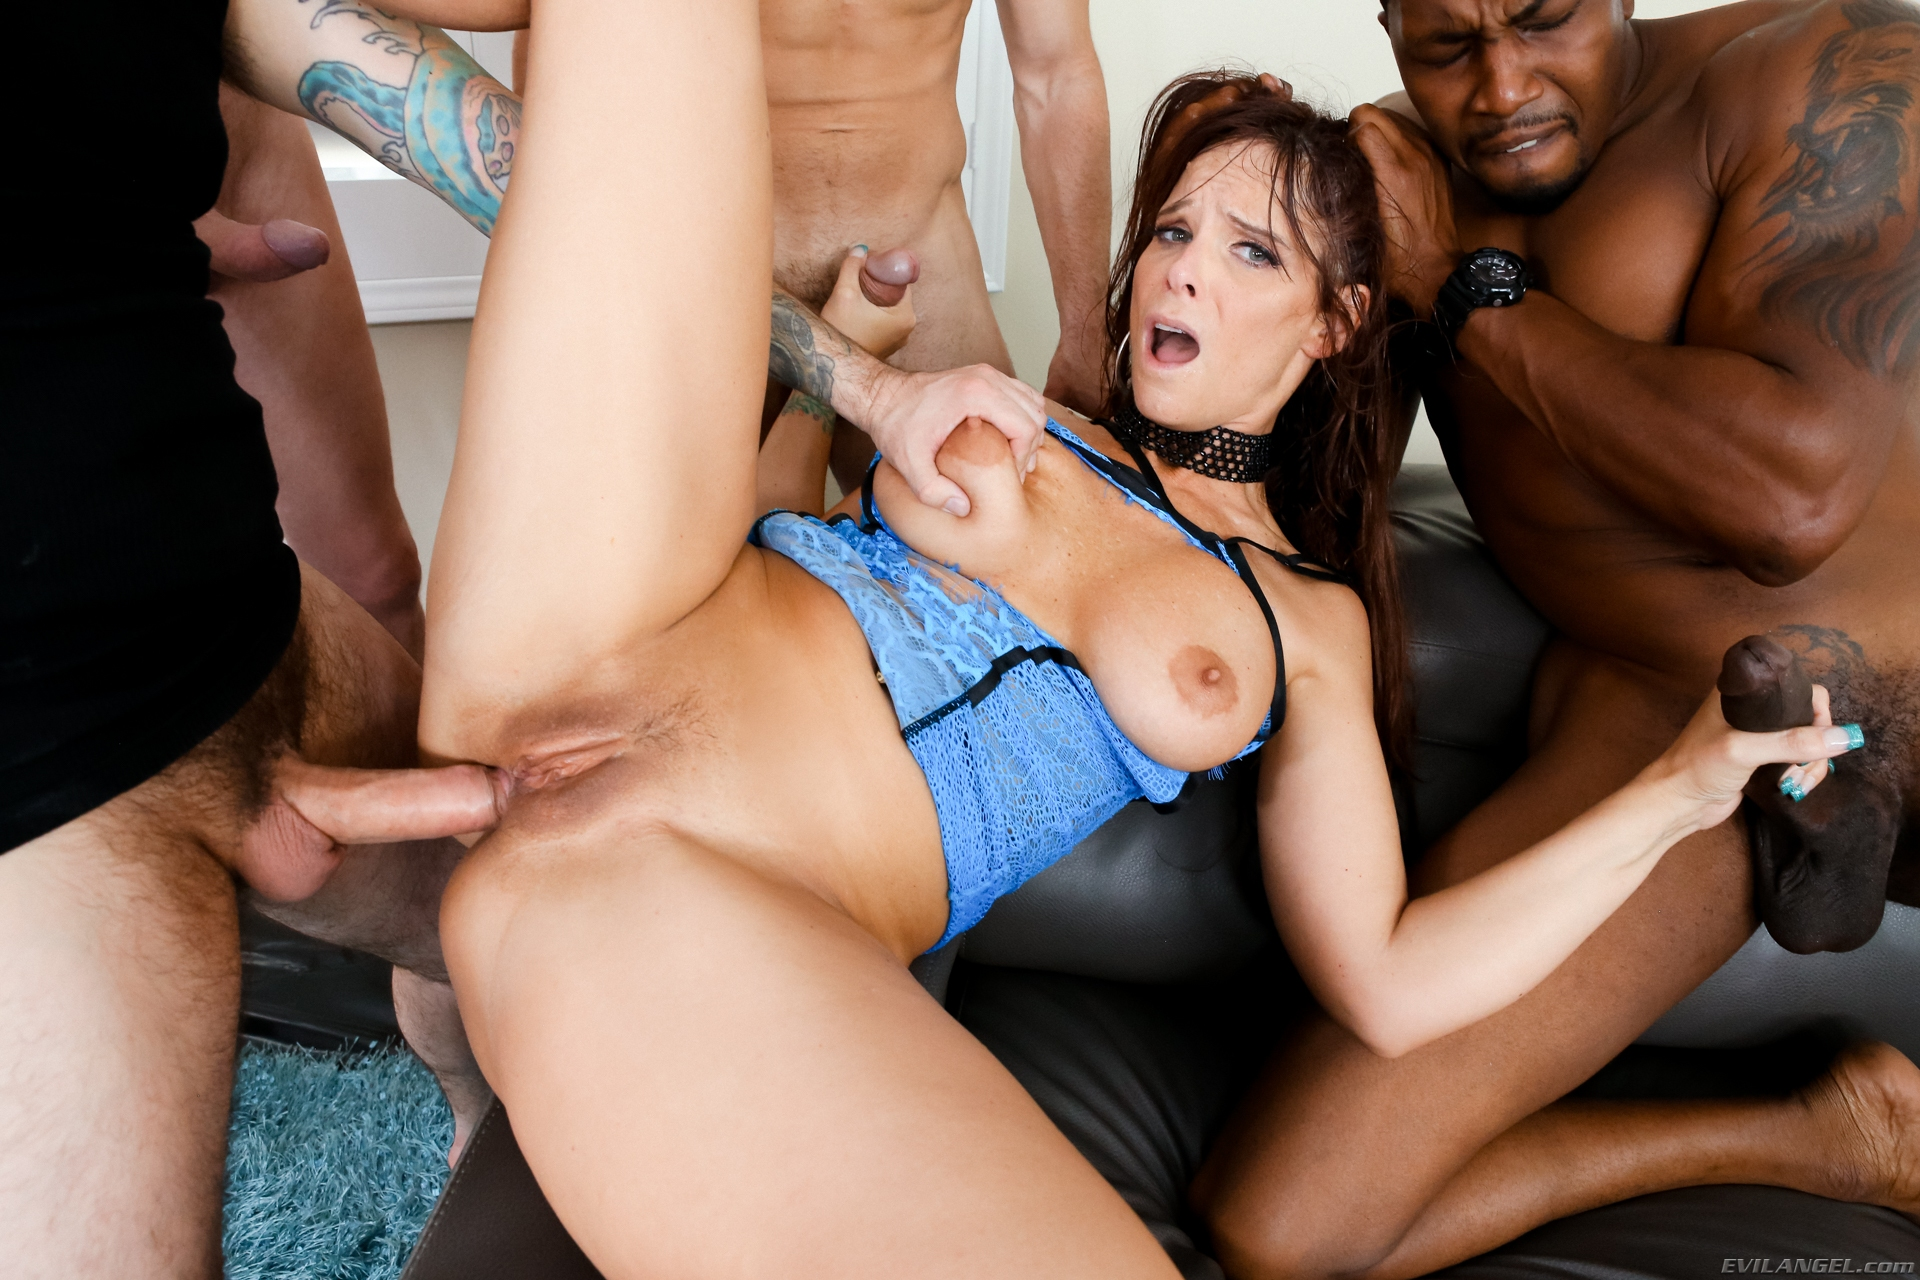 Busty milf rayveness getting banged hard featuring exclusively for zero tolerance entertainment